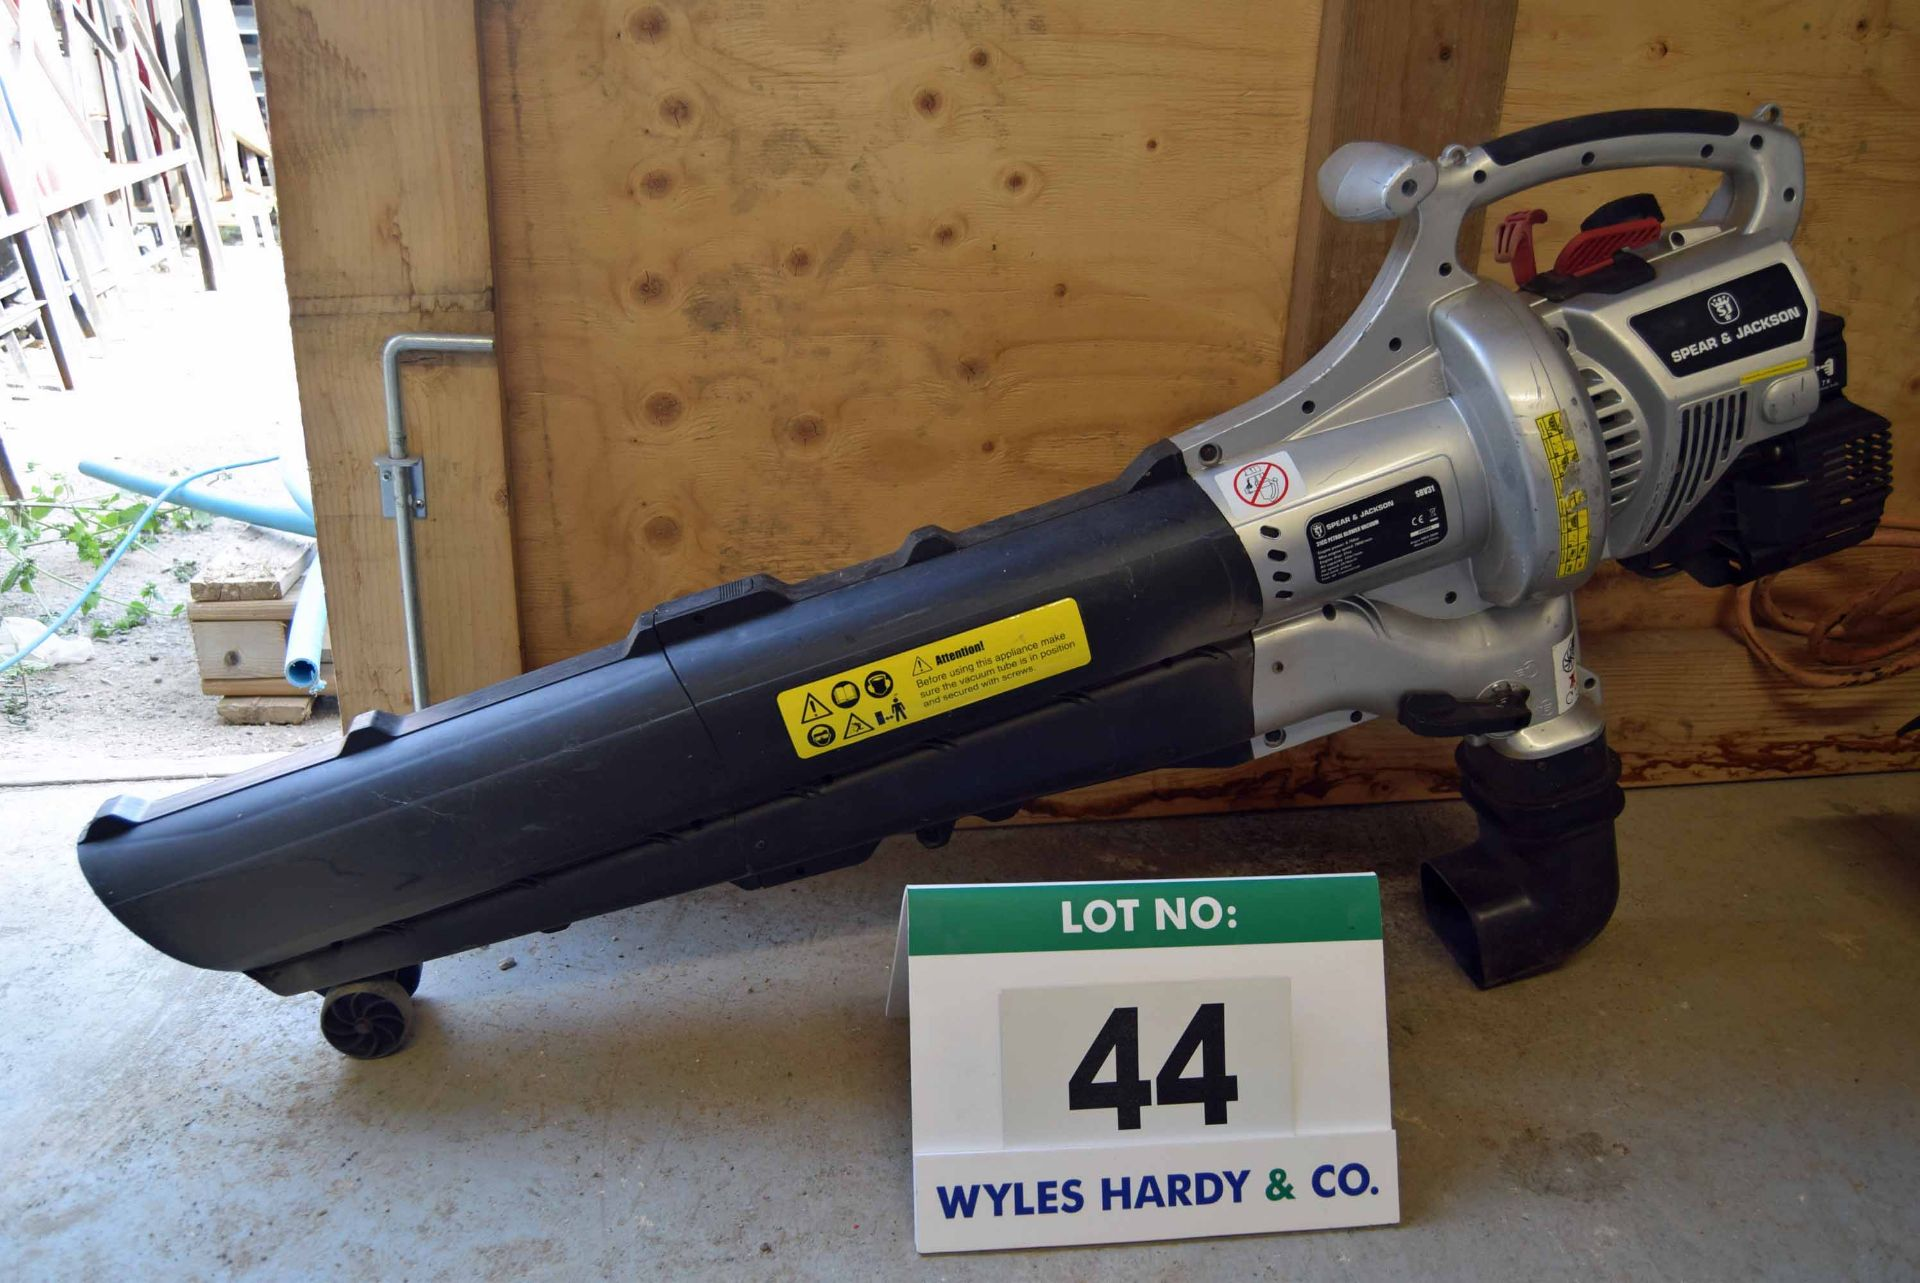 Lot 44 - A SPEAR AND JACKSON SBB1 31cc Petrol Powered Blower/Vacuum (No Collection Bag)